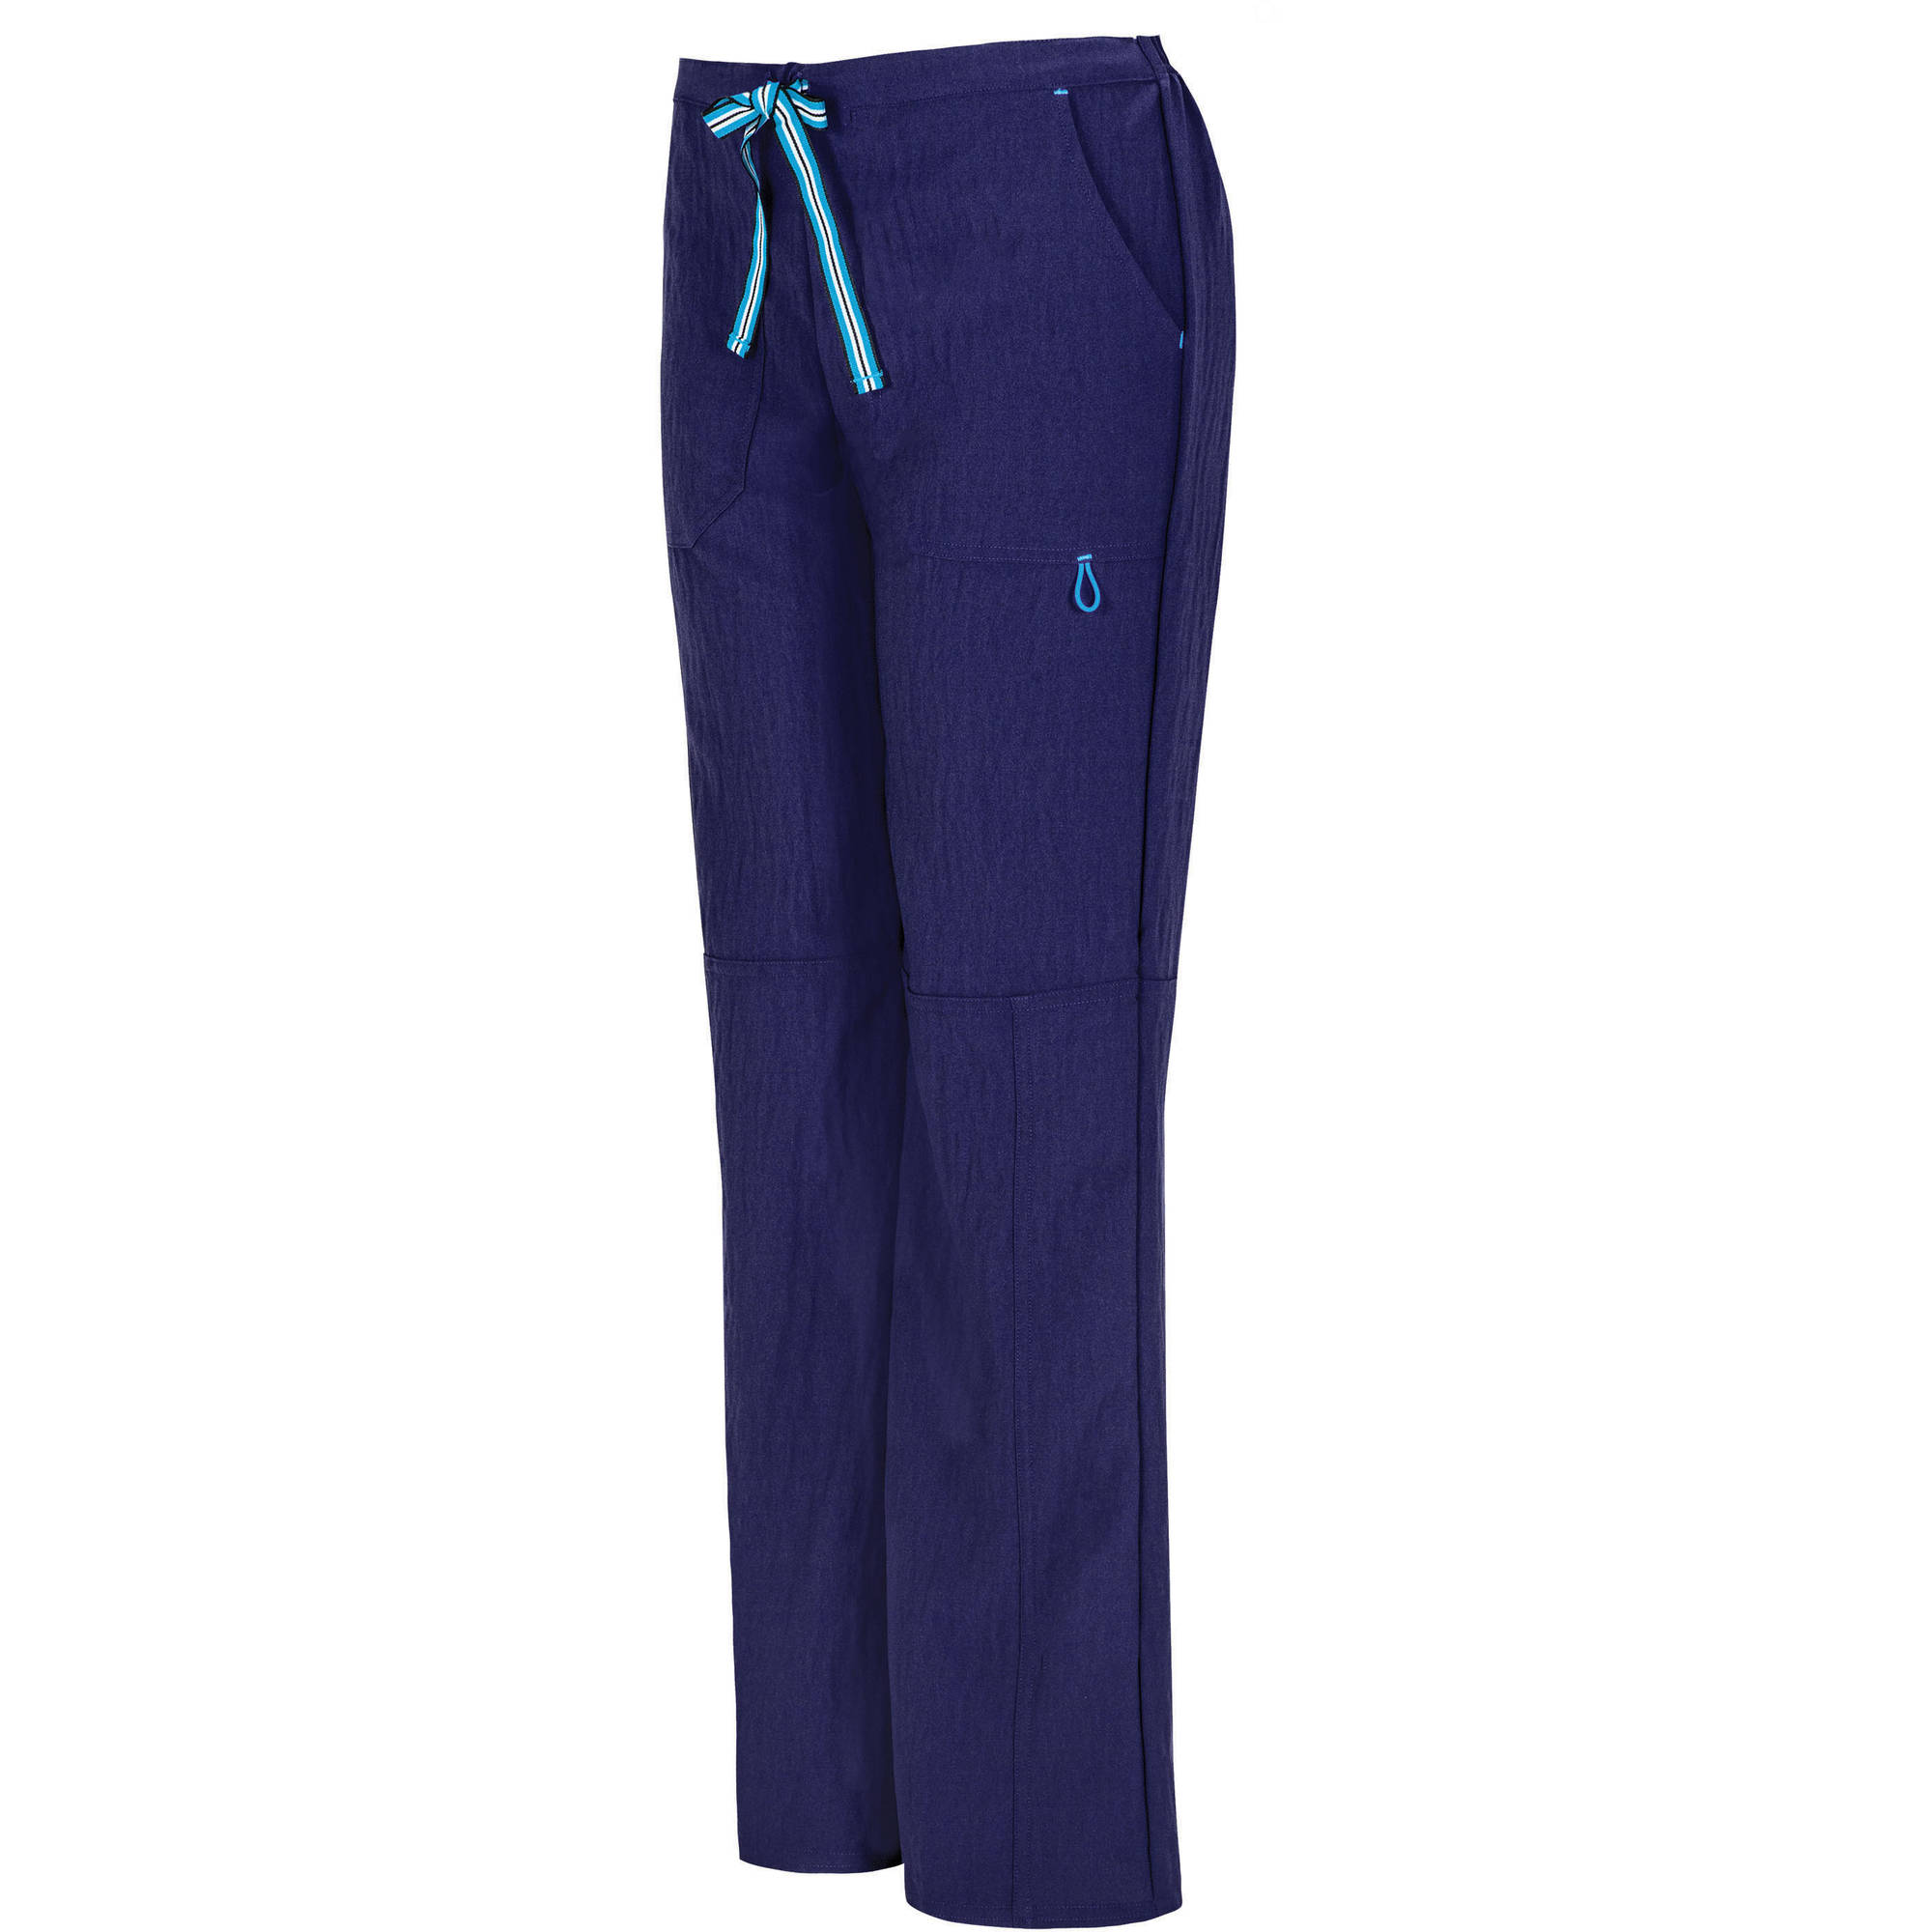 1c7a1faa565 Scrubstar - Women's Premium Collection Performance Drawstring Scrub Pant -  Walmart.com